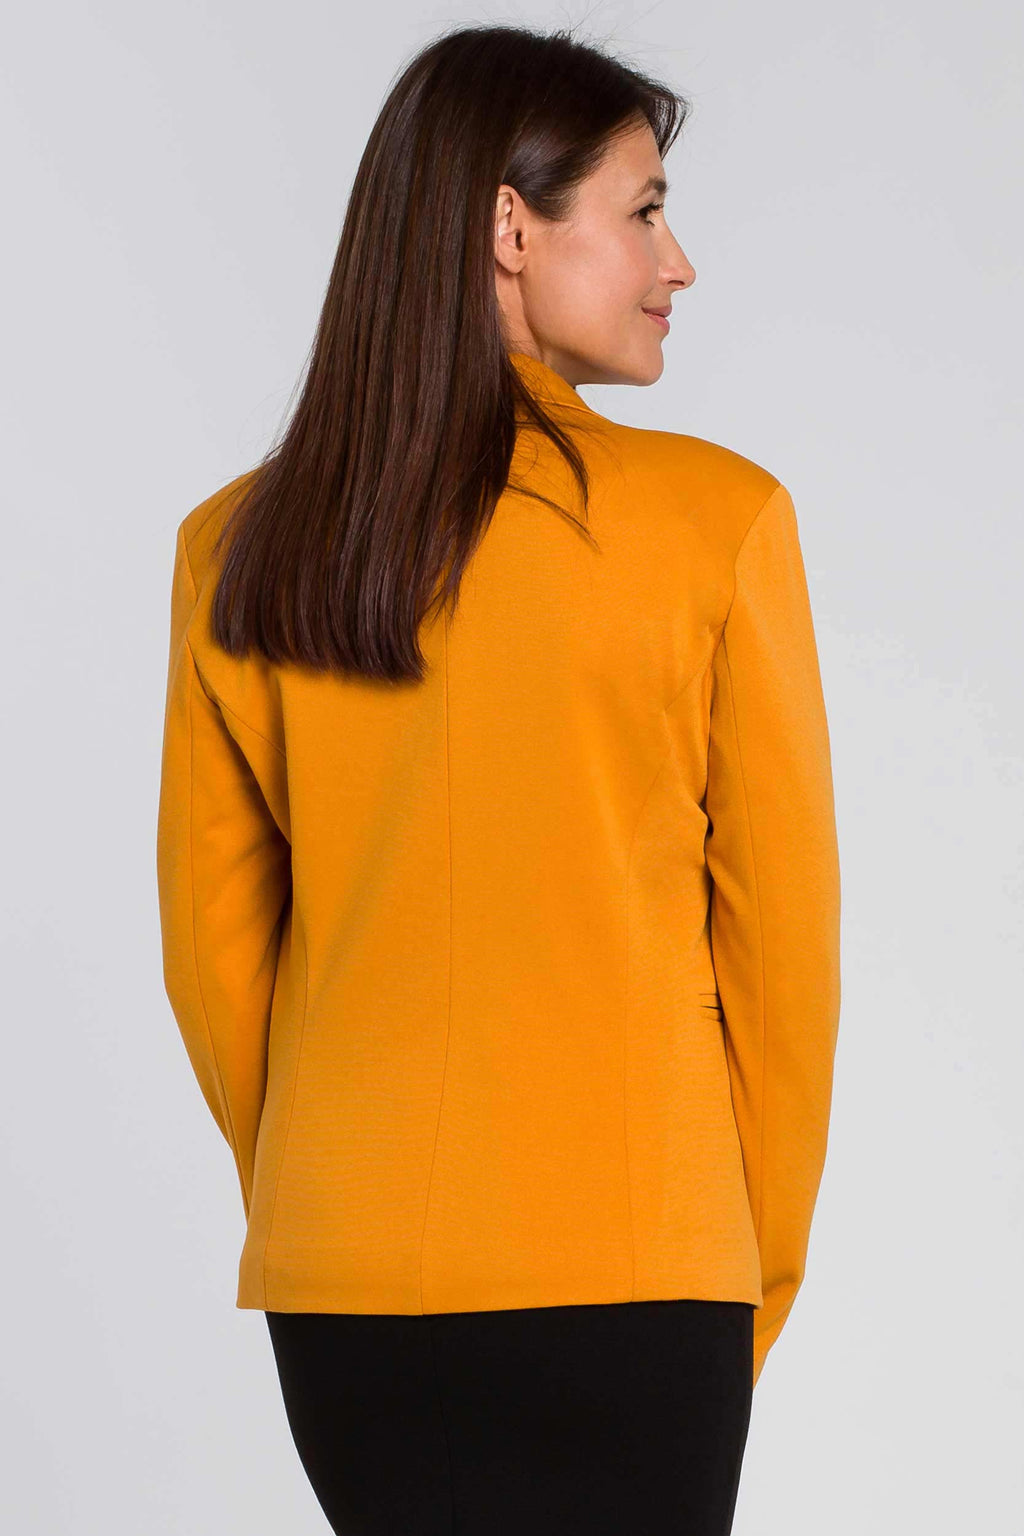 Yellow Cotton Blazer With Dotted Lining - So Chic Boutique